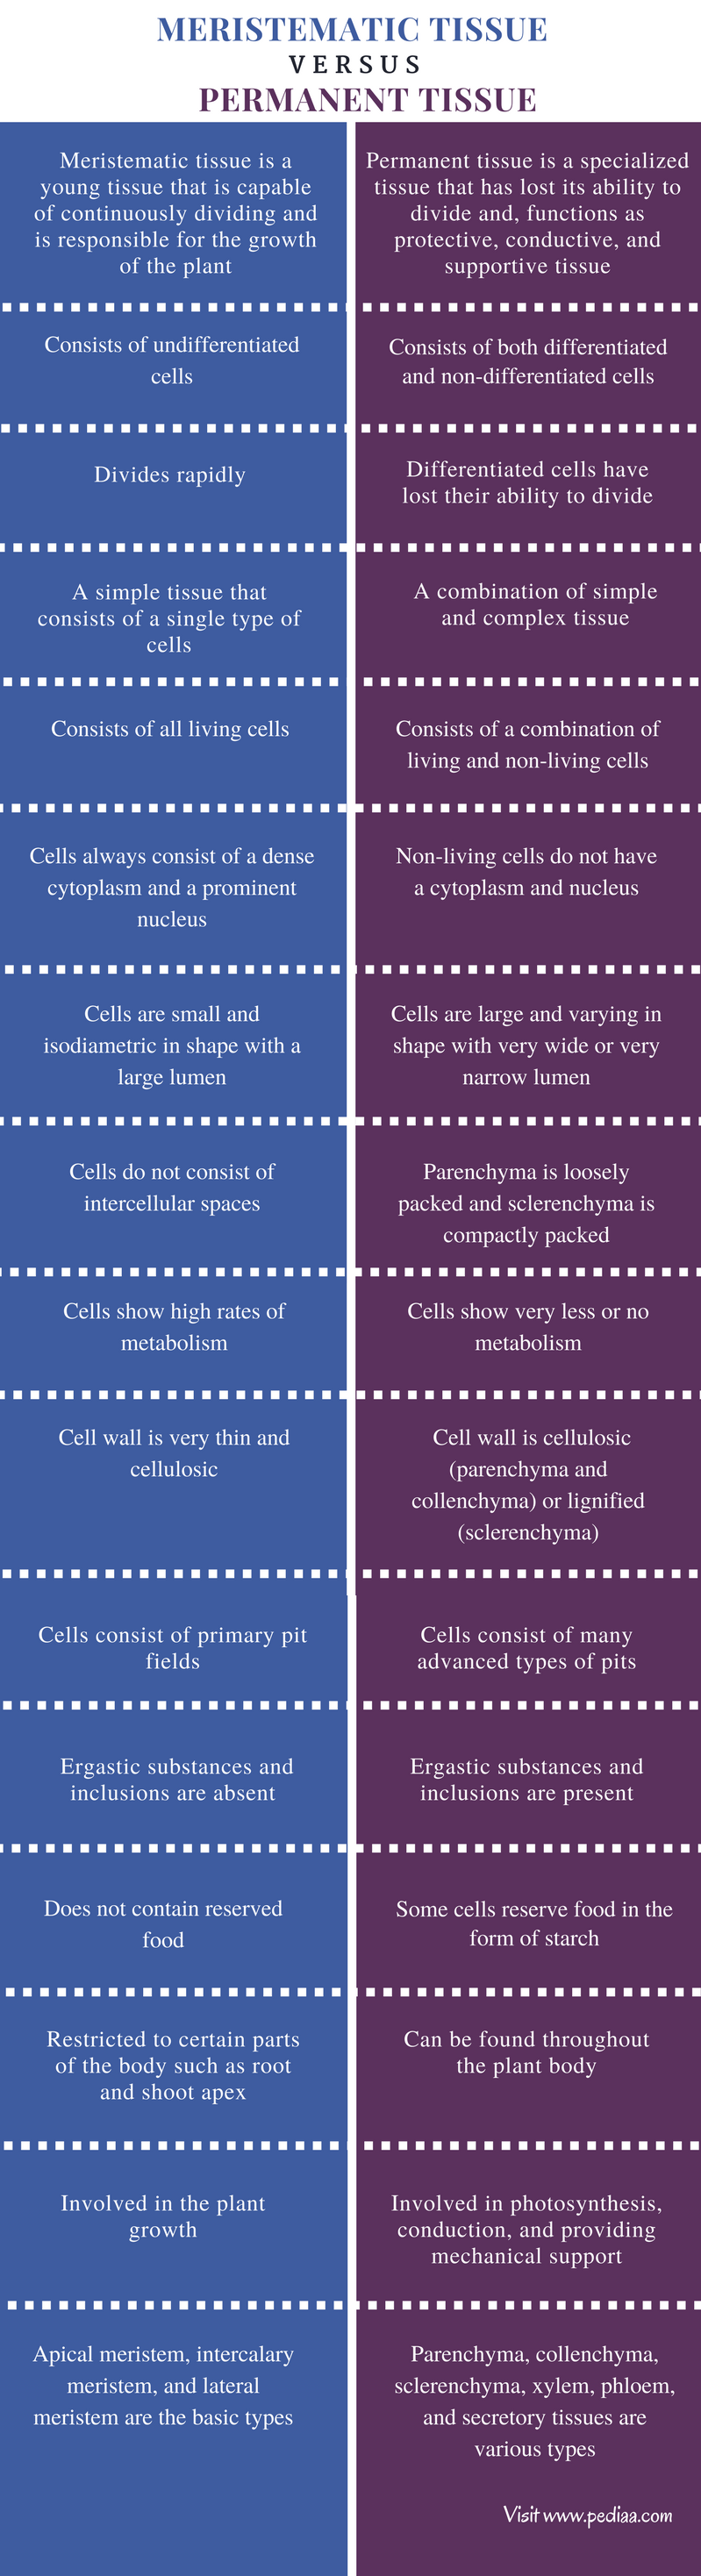 Difference Between Meristematic Tissue and Permanent Tissue - Comparison Summary